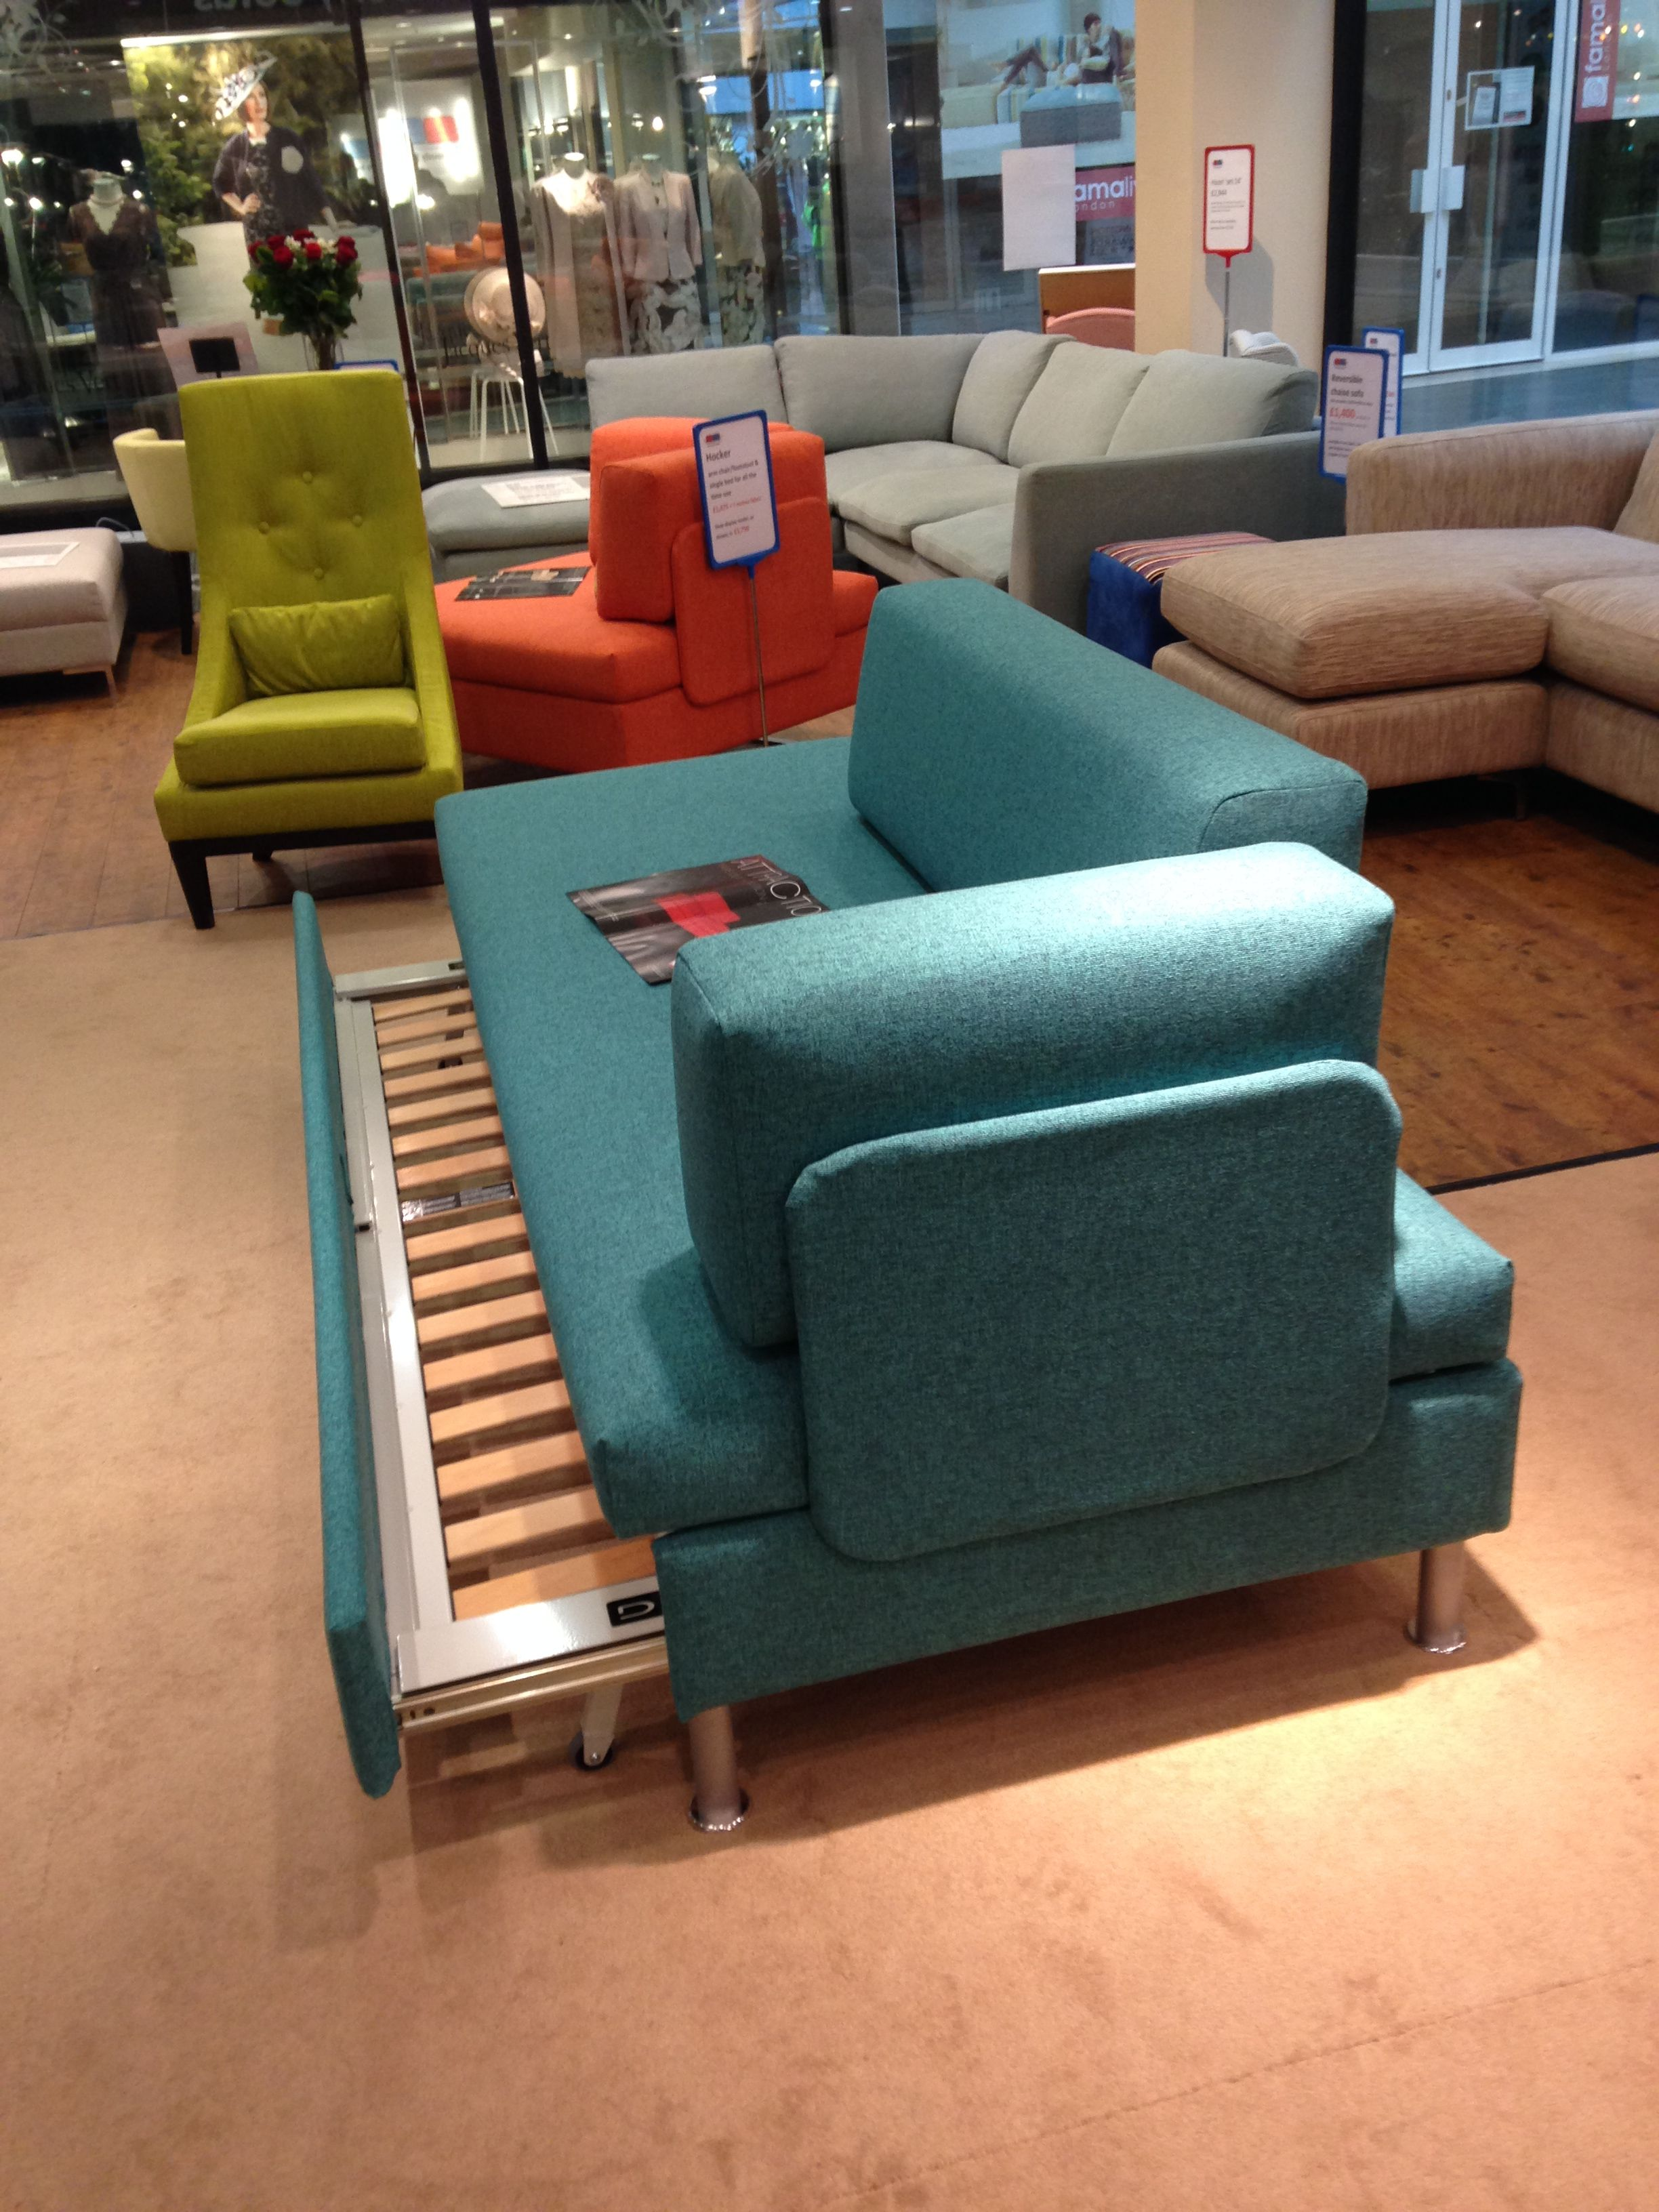 Swiss made luxury sofa bed. This is the double bed option